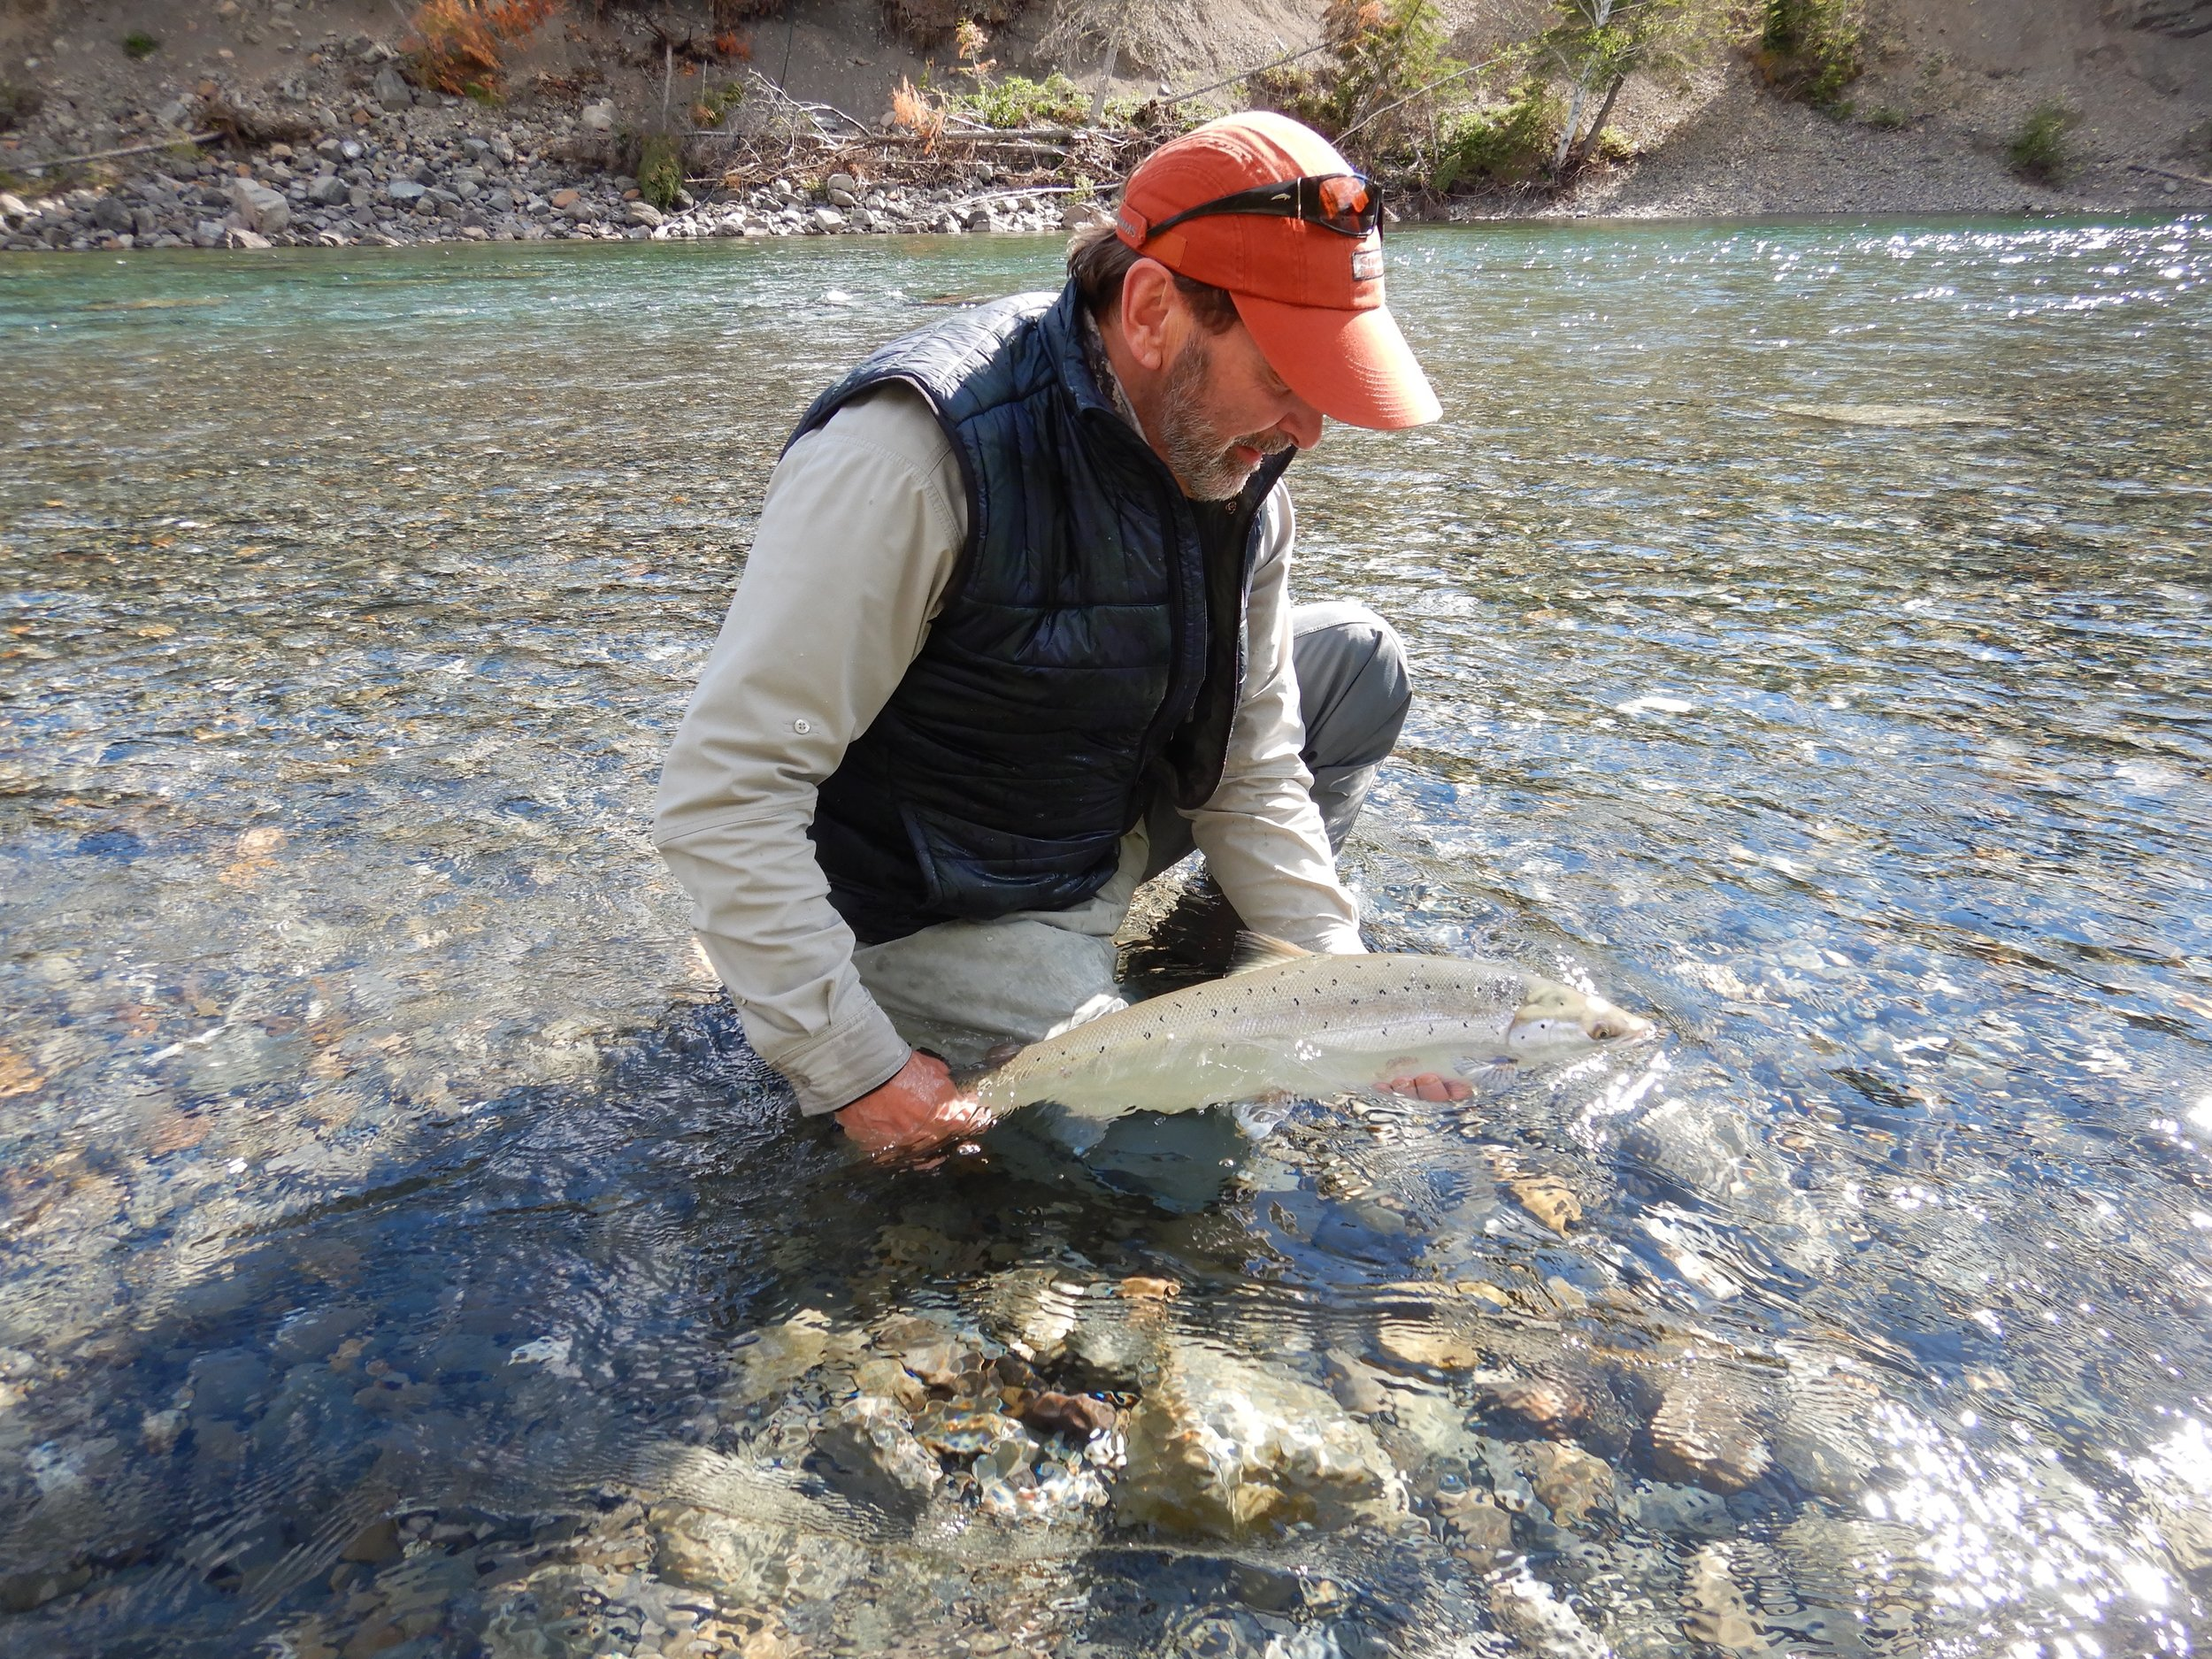 ASF director of Quebec operations Charles Cuisson releases a fine salmon on the Bonaventure. Well done Charles!